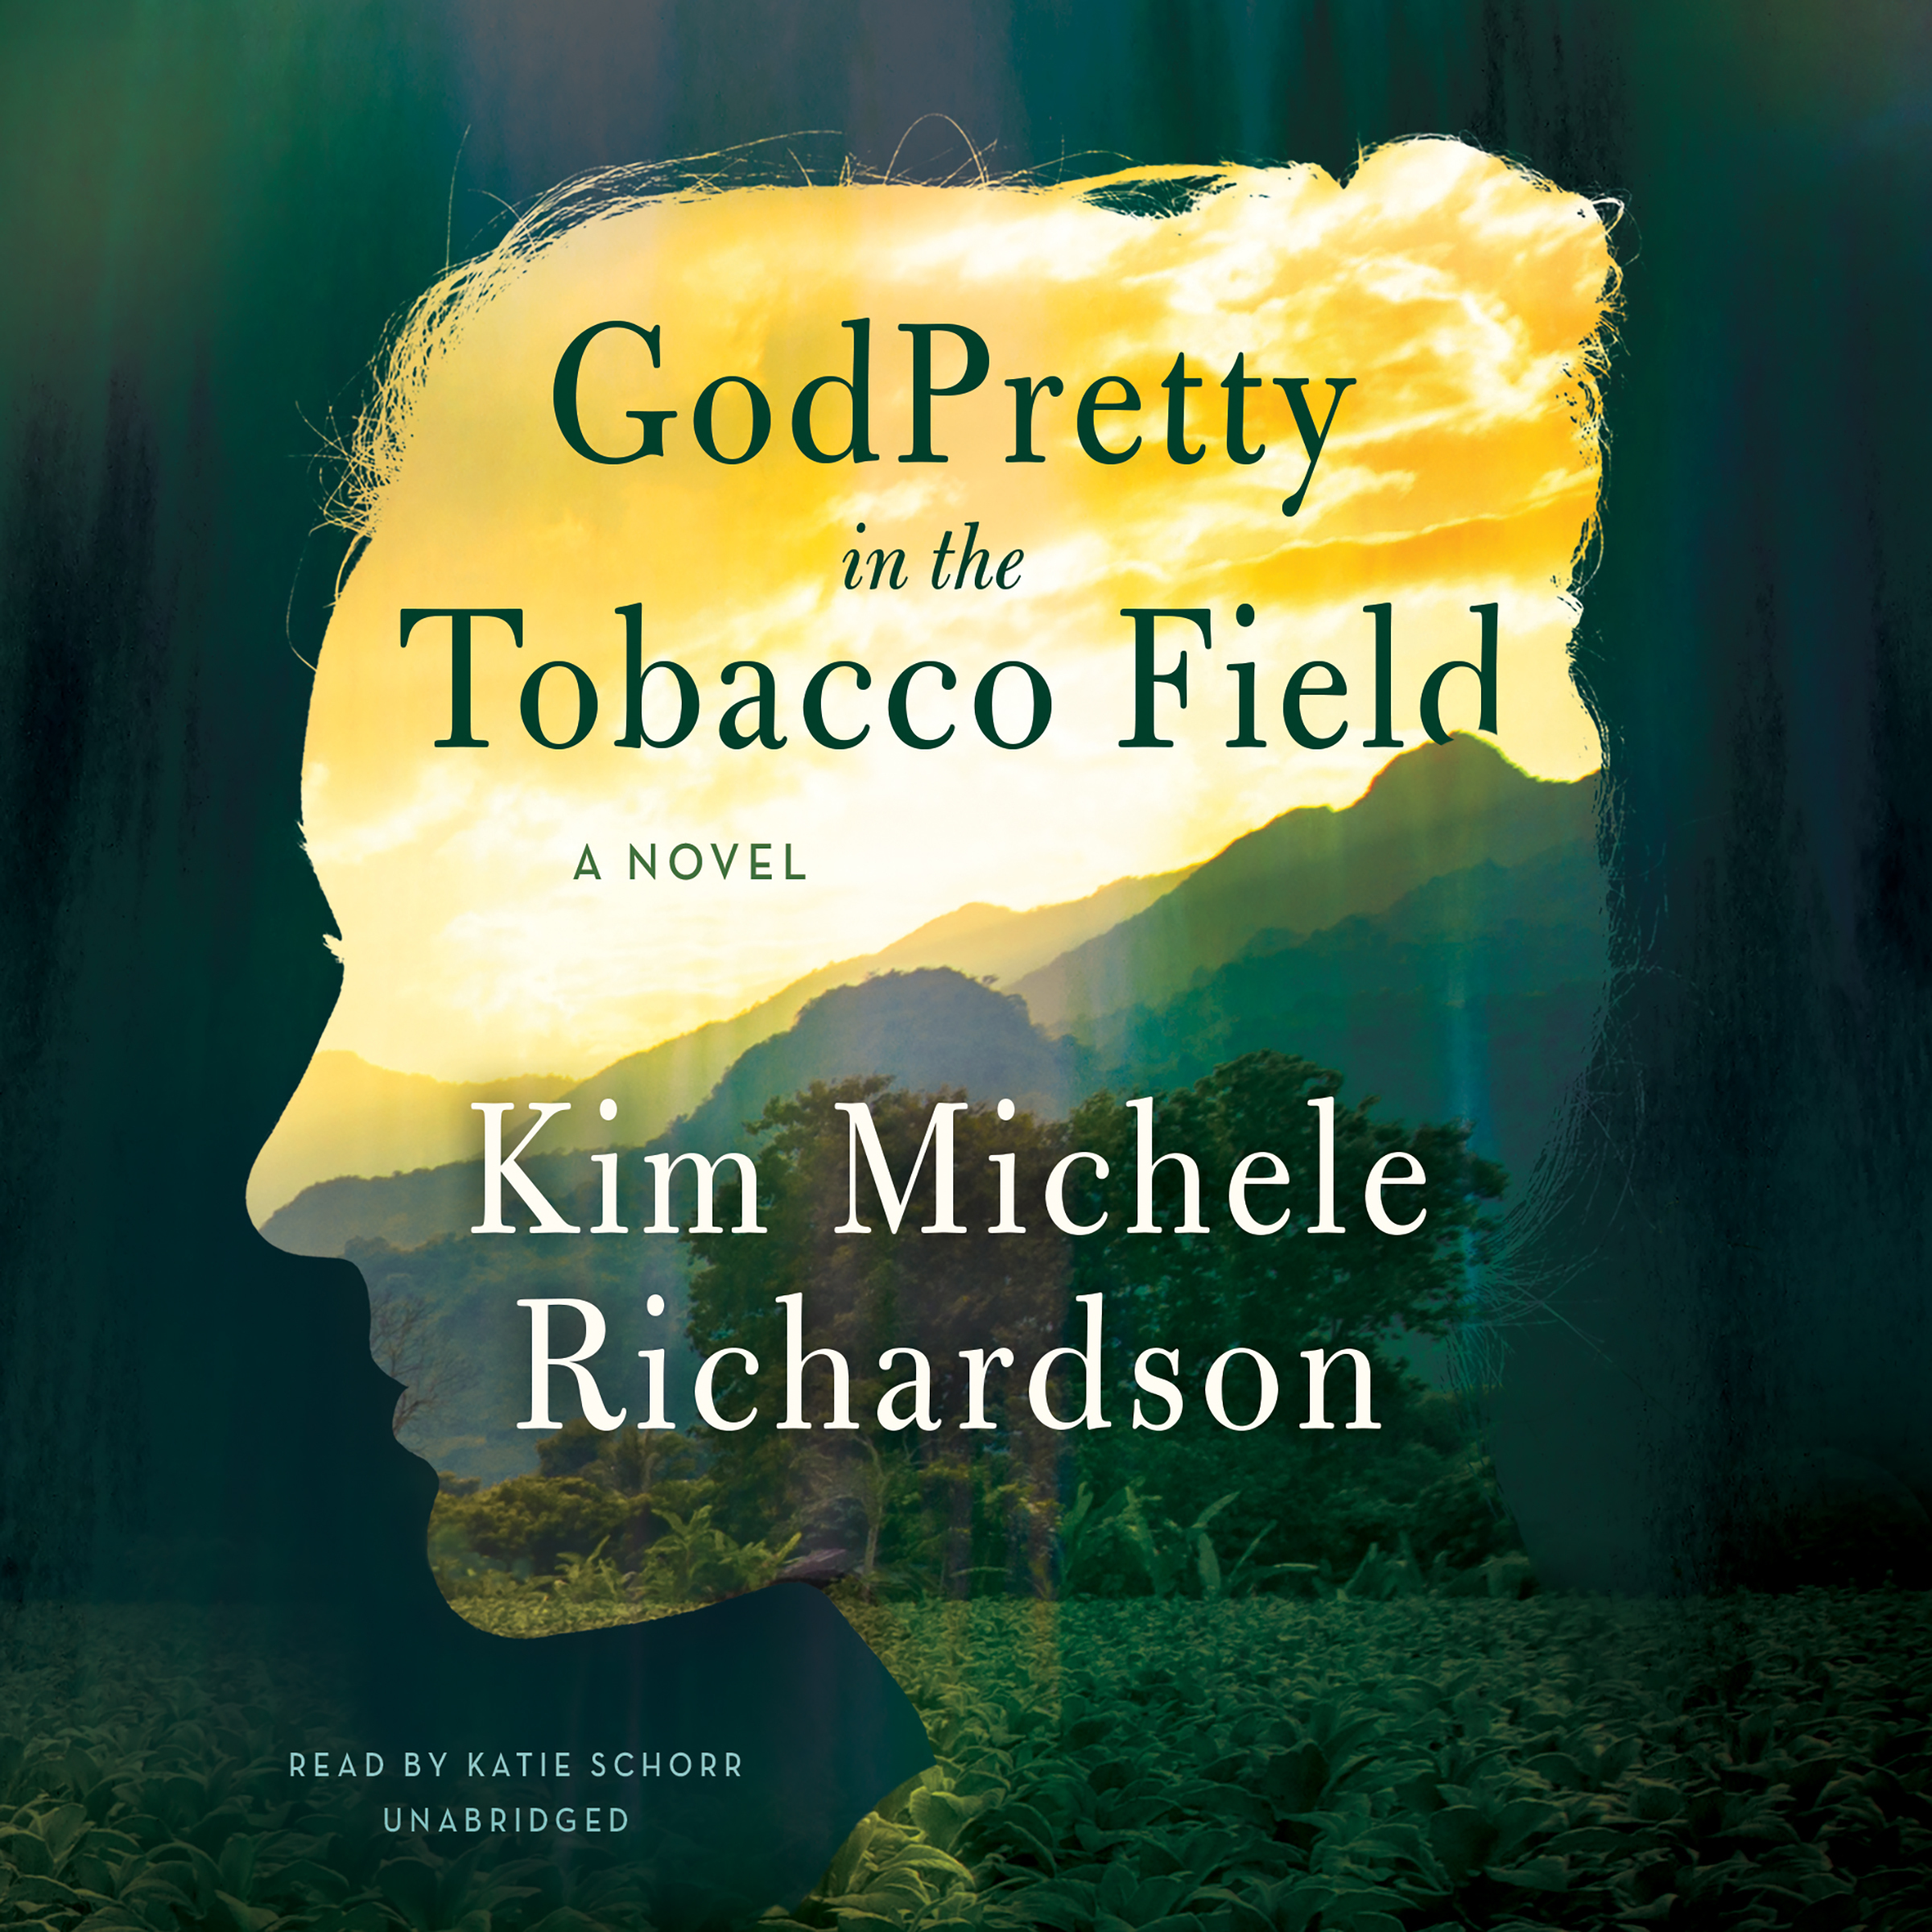 Printable GodPretty in the Tobacco Field Audiobook Cover Art